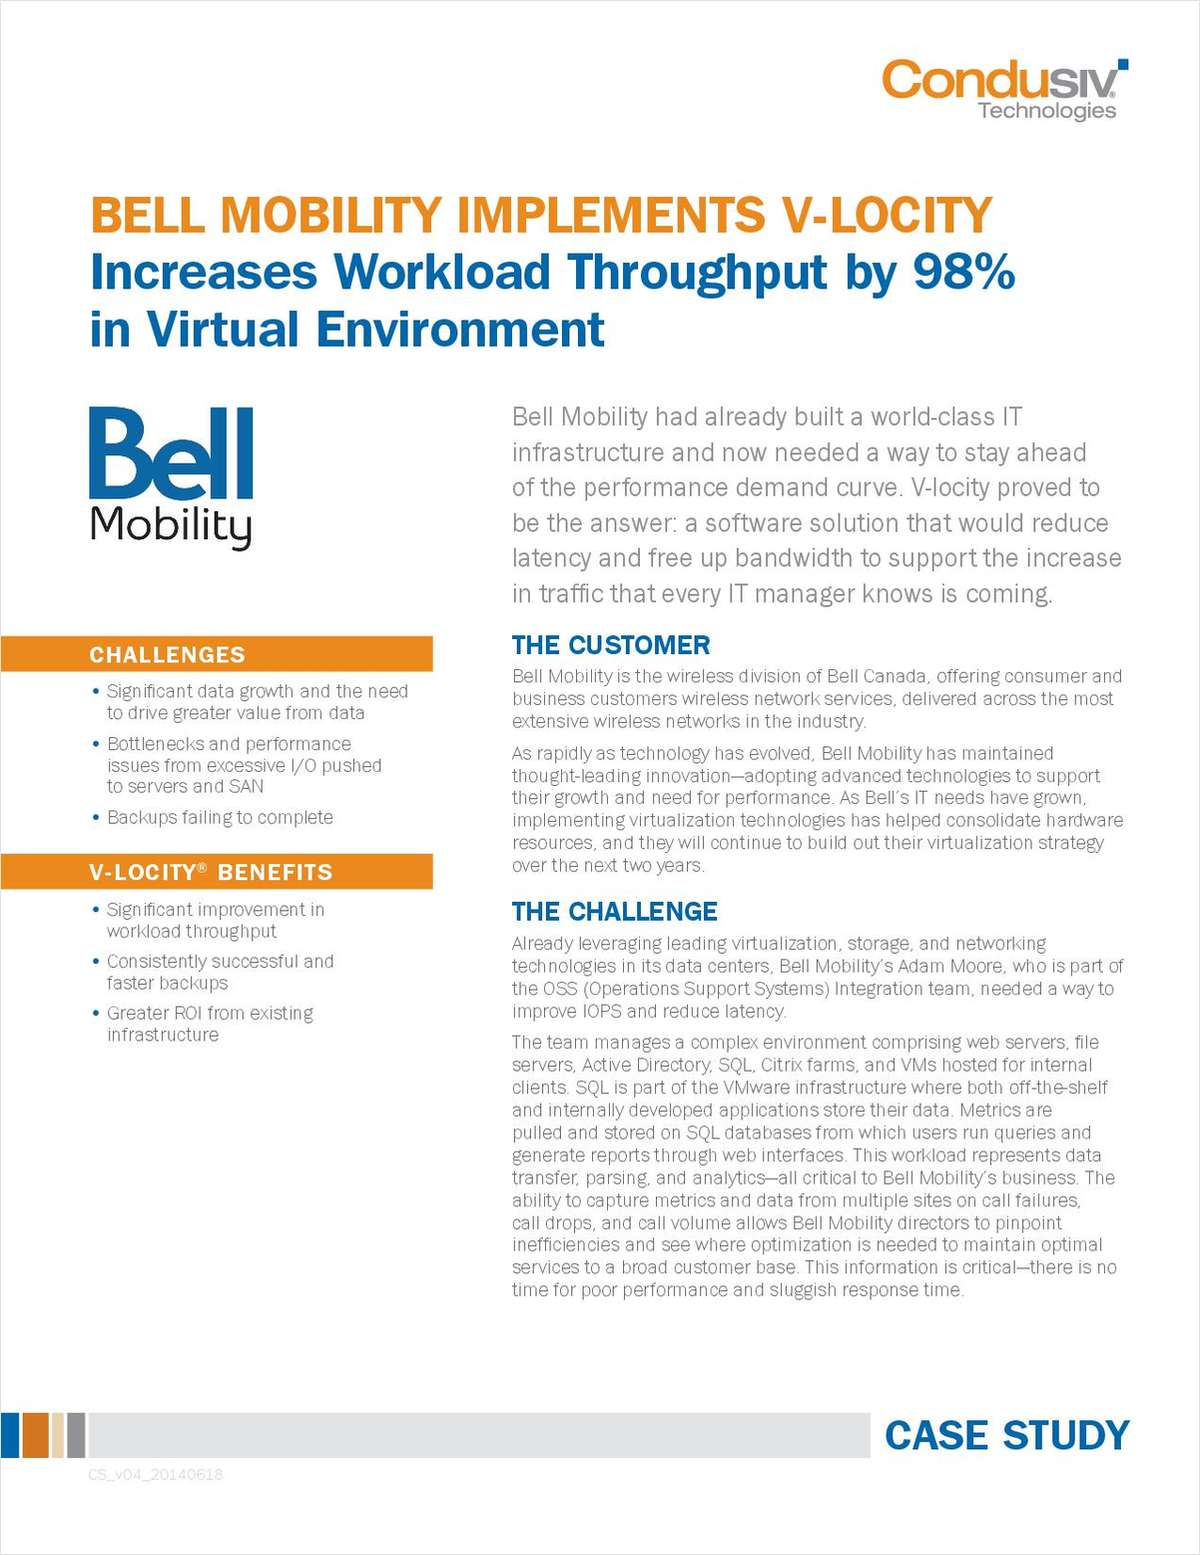 Bell Mobility Implements V-locity I/O reduction Software and   Increases Workload Throughput By 98%